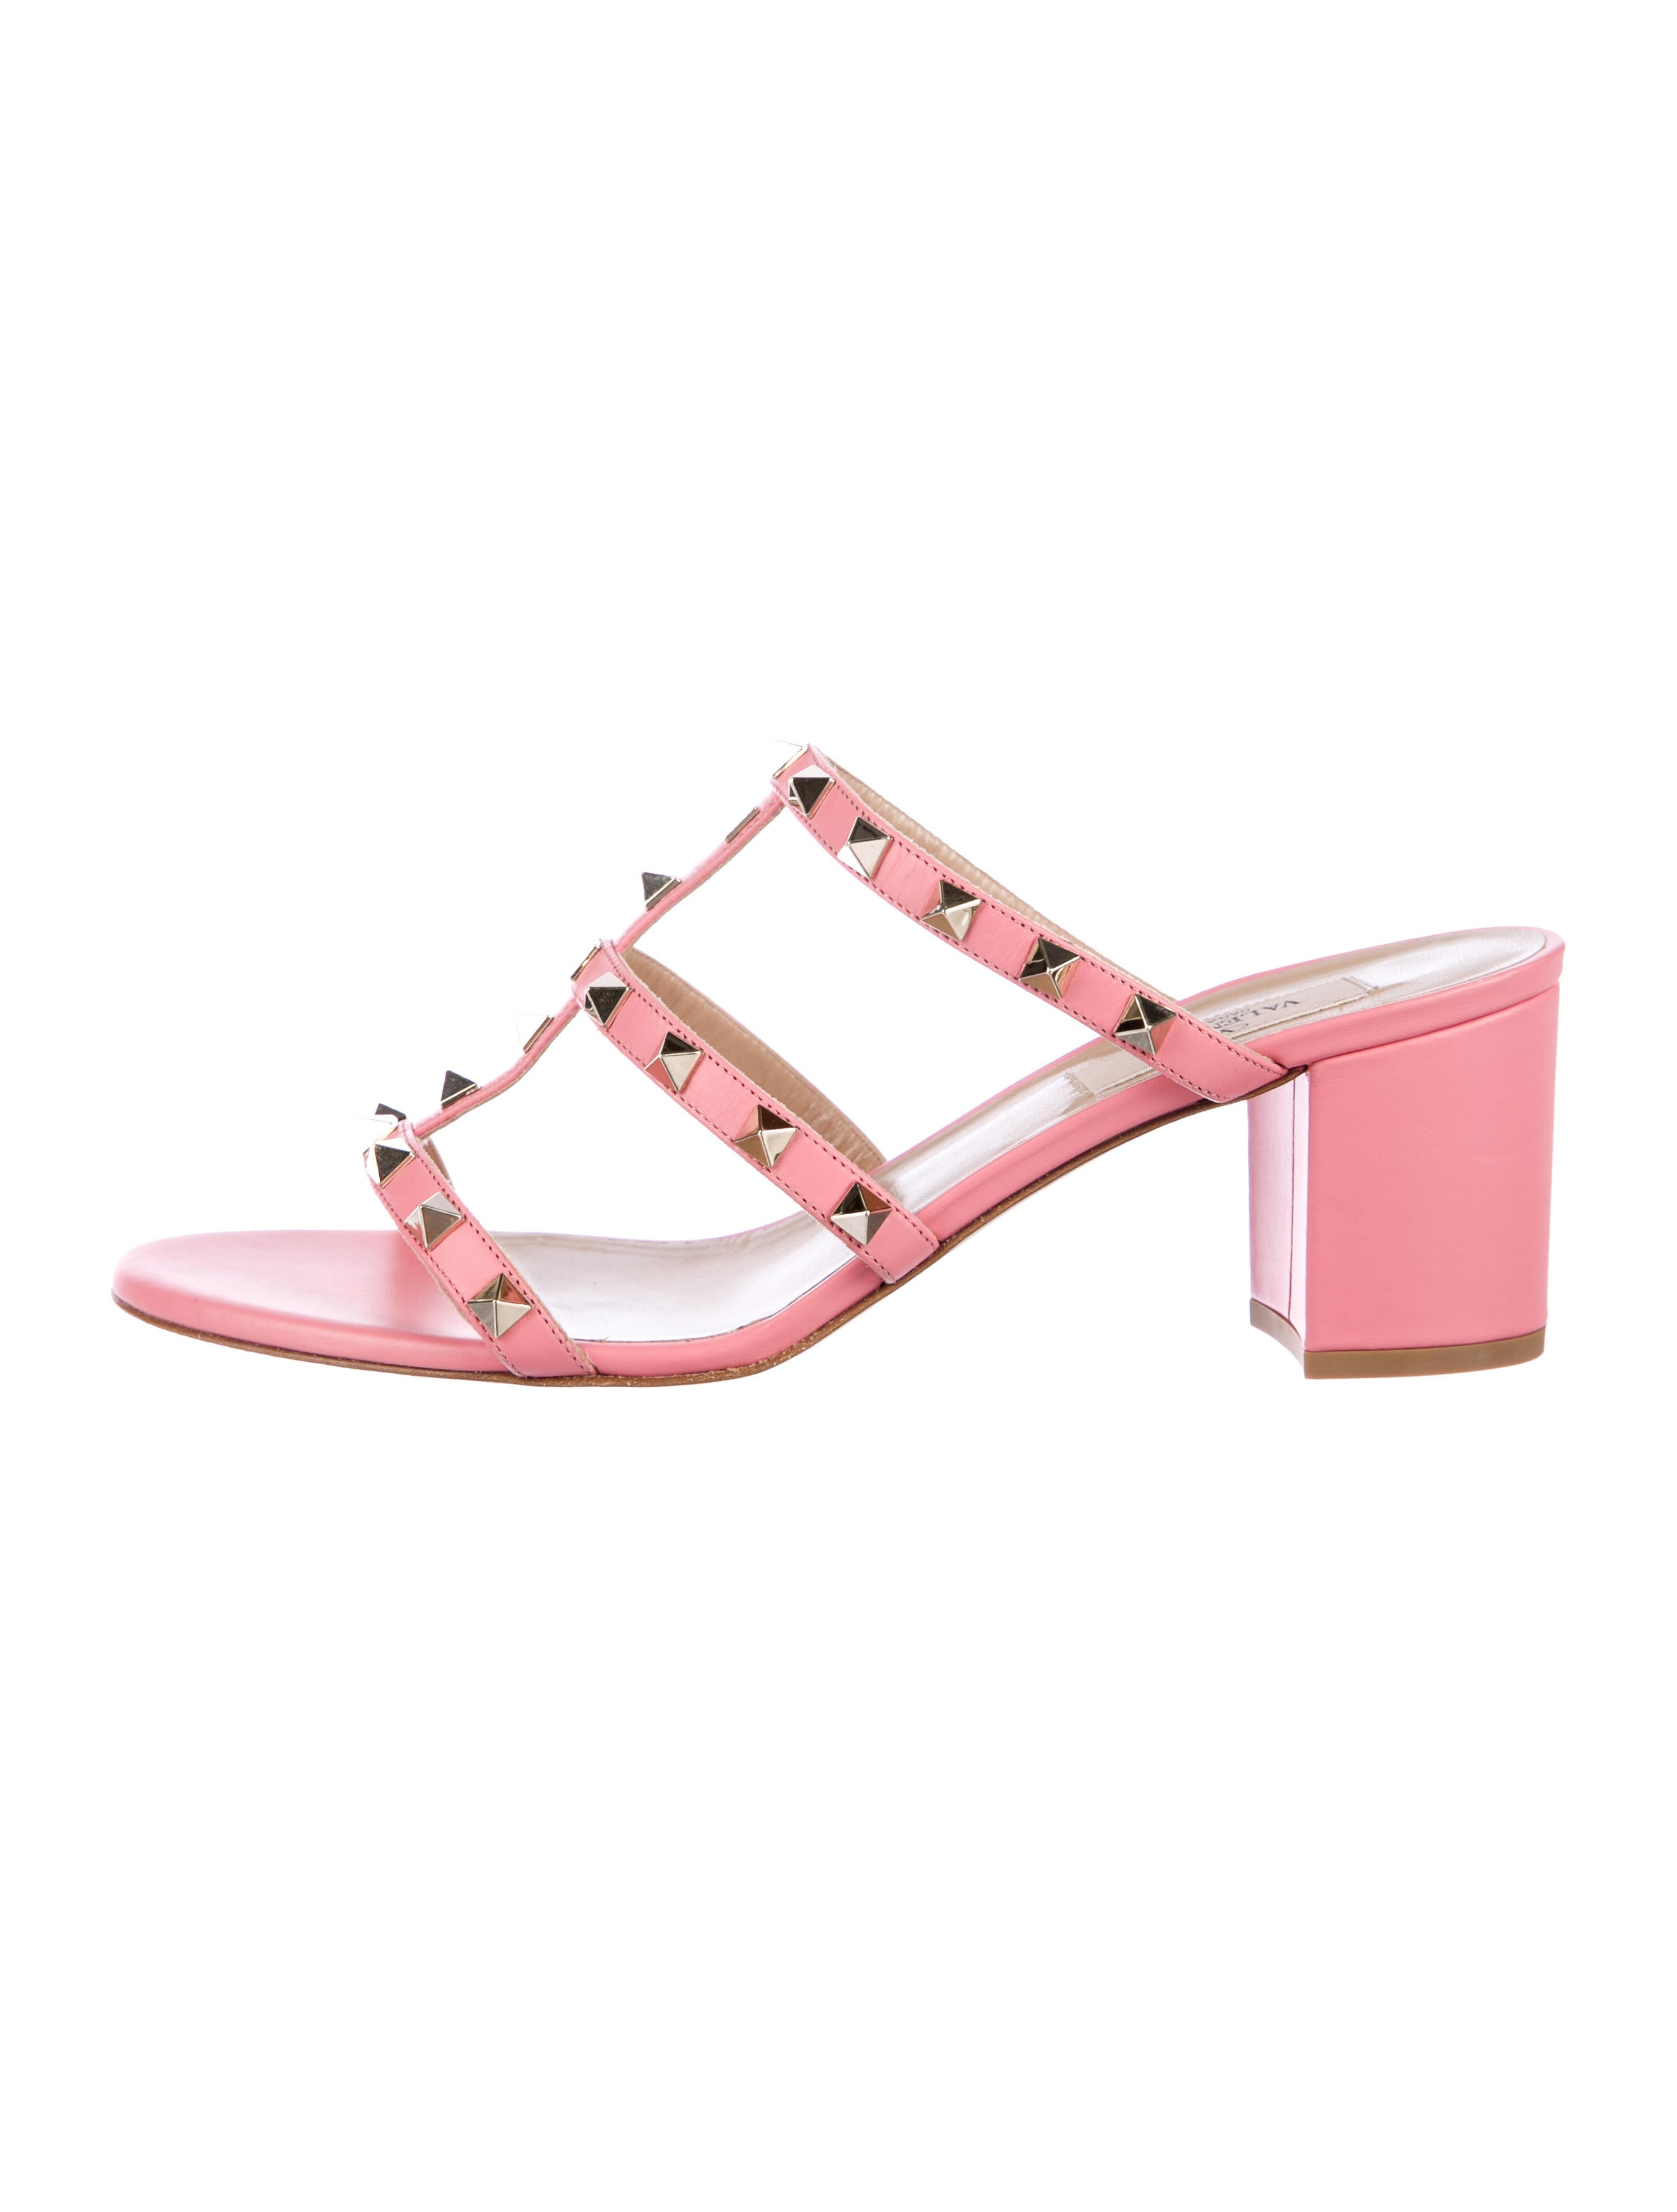 Valentino Rockstud Leather Sandals w/ Tags clearance Inexpensive excellent sale online 1AJz3ZMbB0